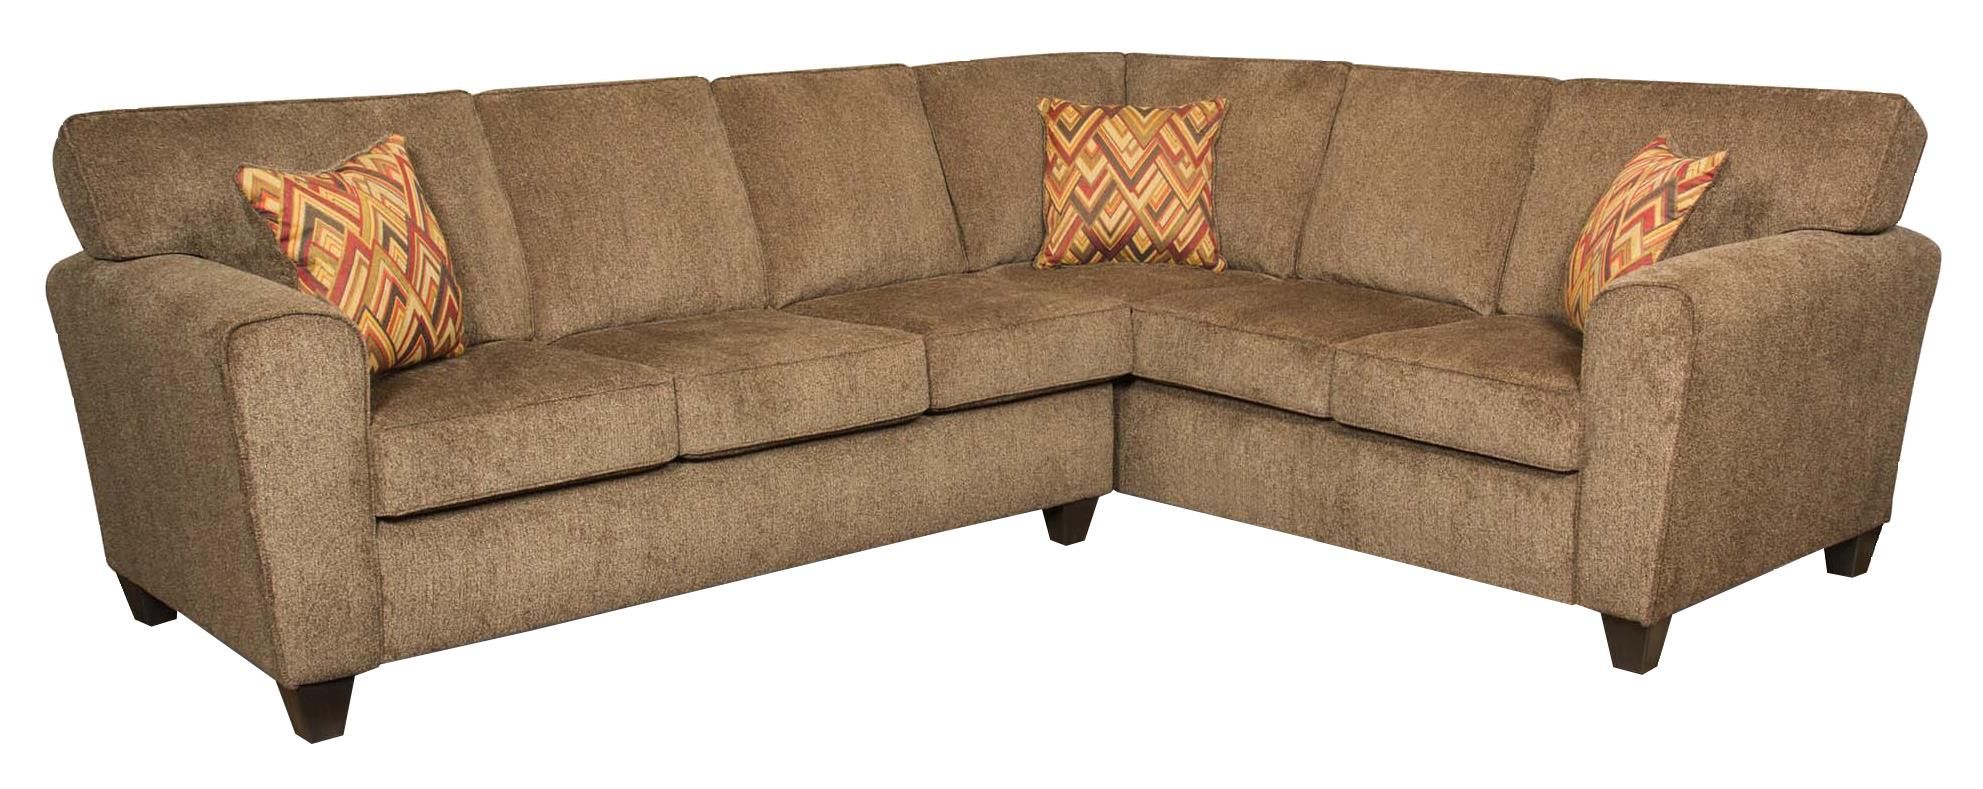 American Furniture 3100 Sectional Sofa - Item Number: 3120+3130-Cornell-Cocoa